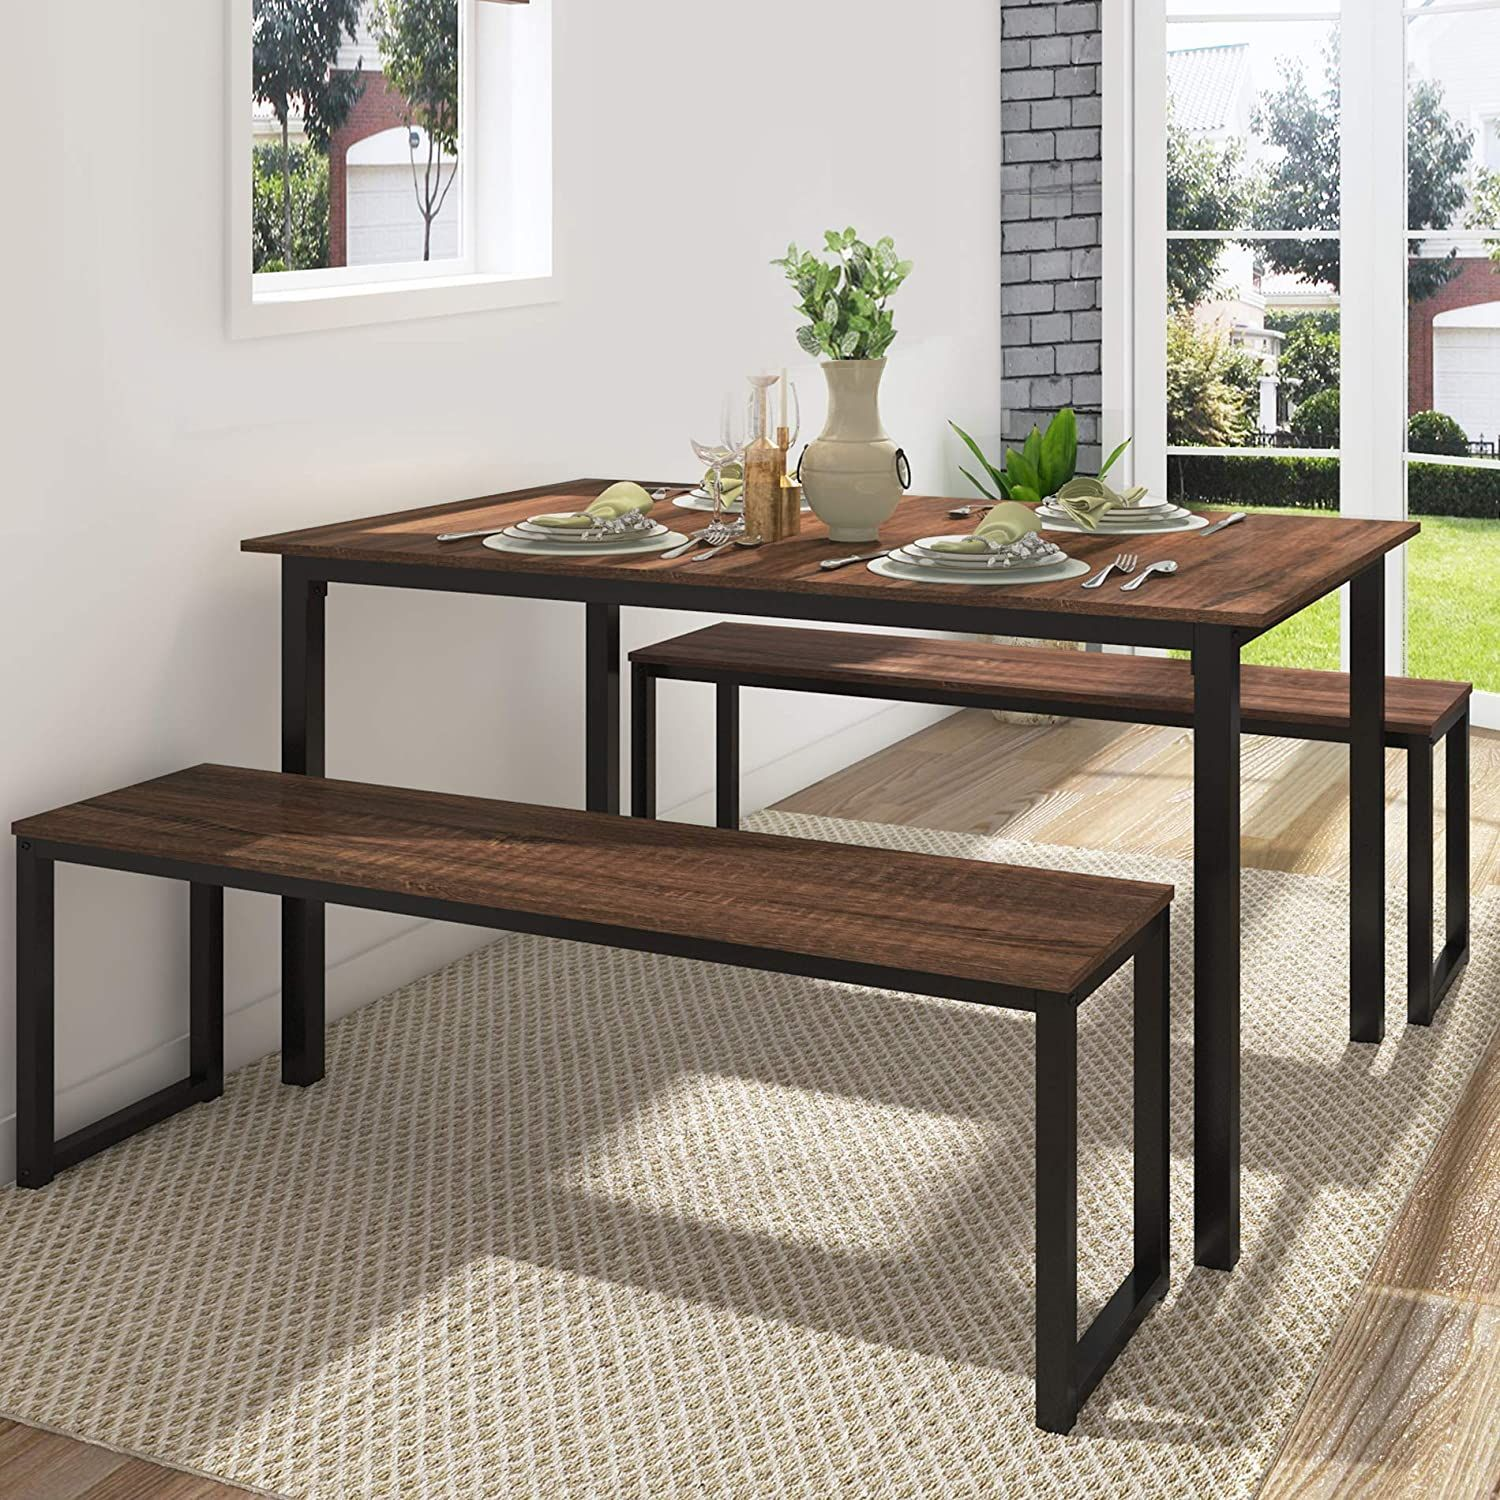 45+ Dining table with 2 benches Best Seller